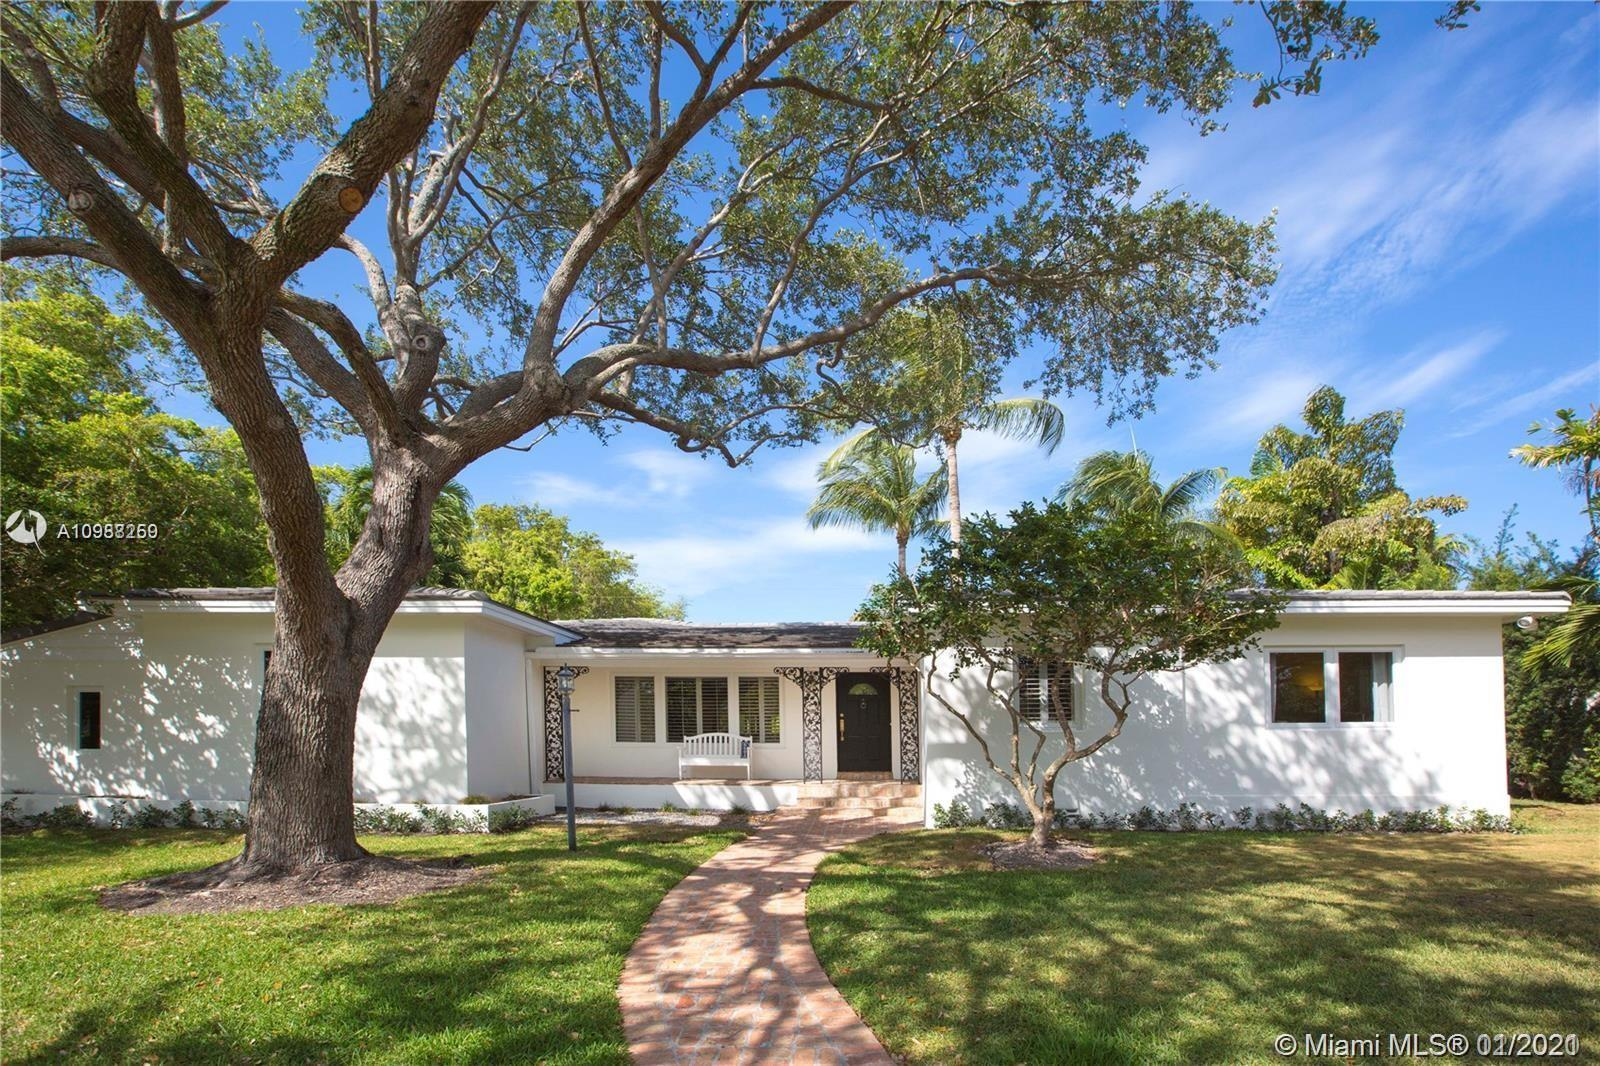 Fabulous, light and airy corner home on Riviera Drive, one of the most prestigious streets in Coral